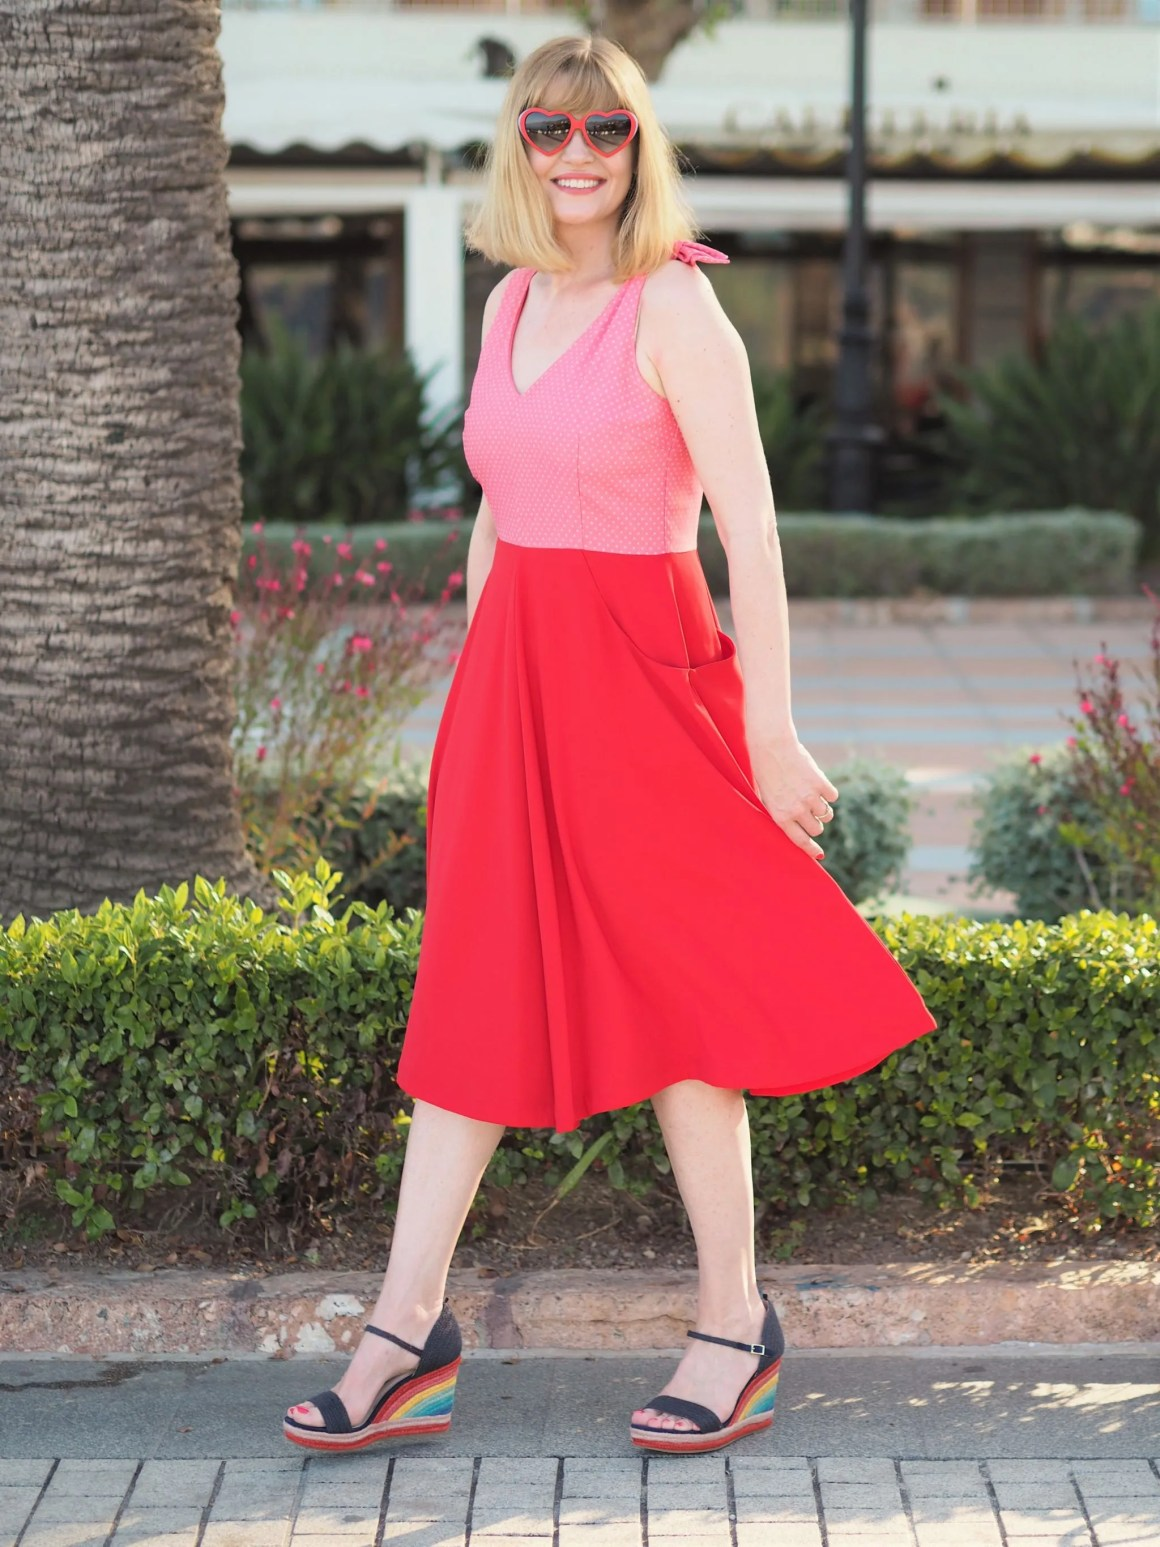 red and pink fifties sundress with rainbow wedge sandals